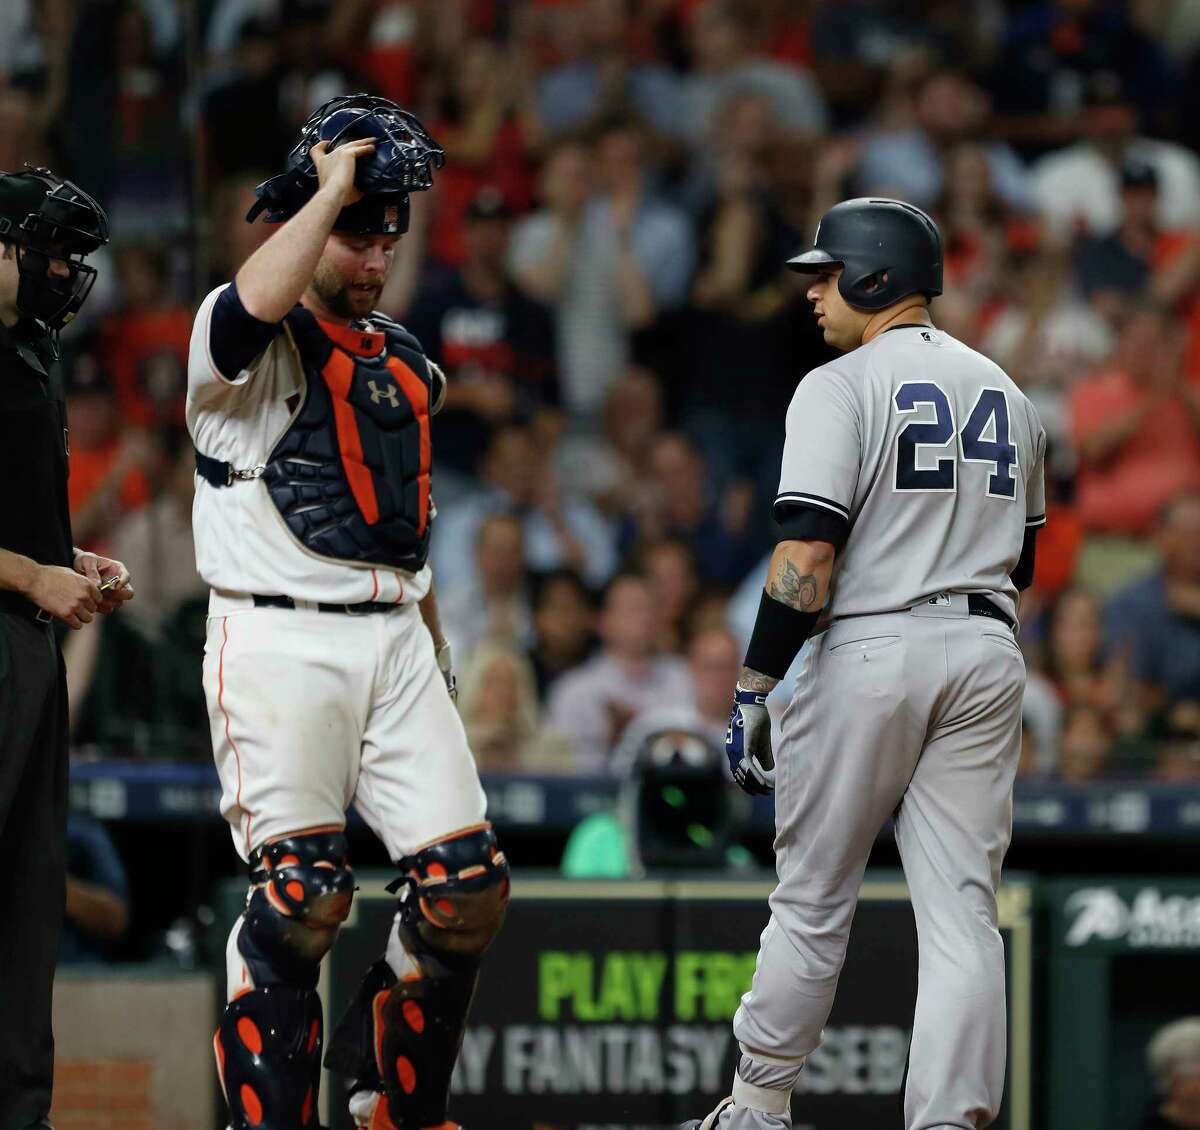 New York Yankees catcher Gary Sanchez (24) reacts after striking out during the ninth inning of an MLB game at Minute Maid Park, Friday, April 27, 2018, in Houston.